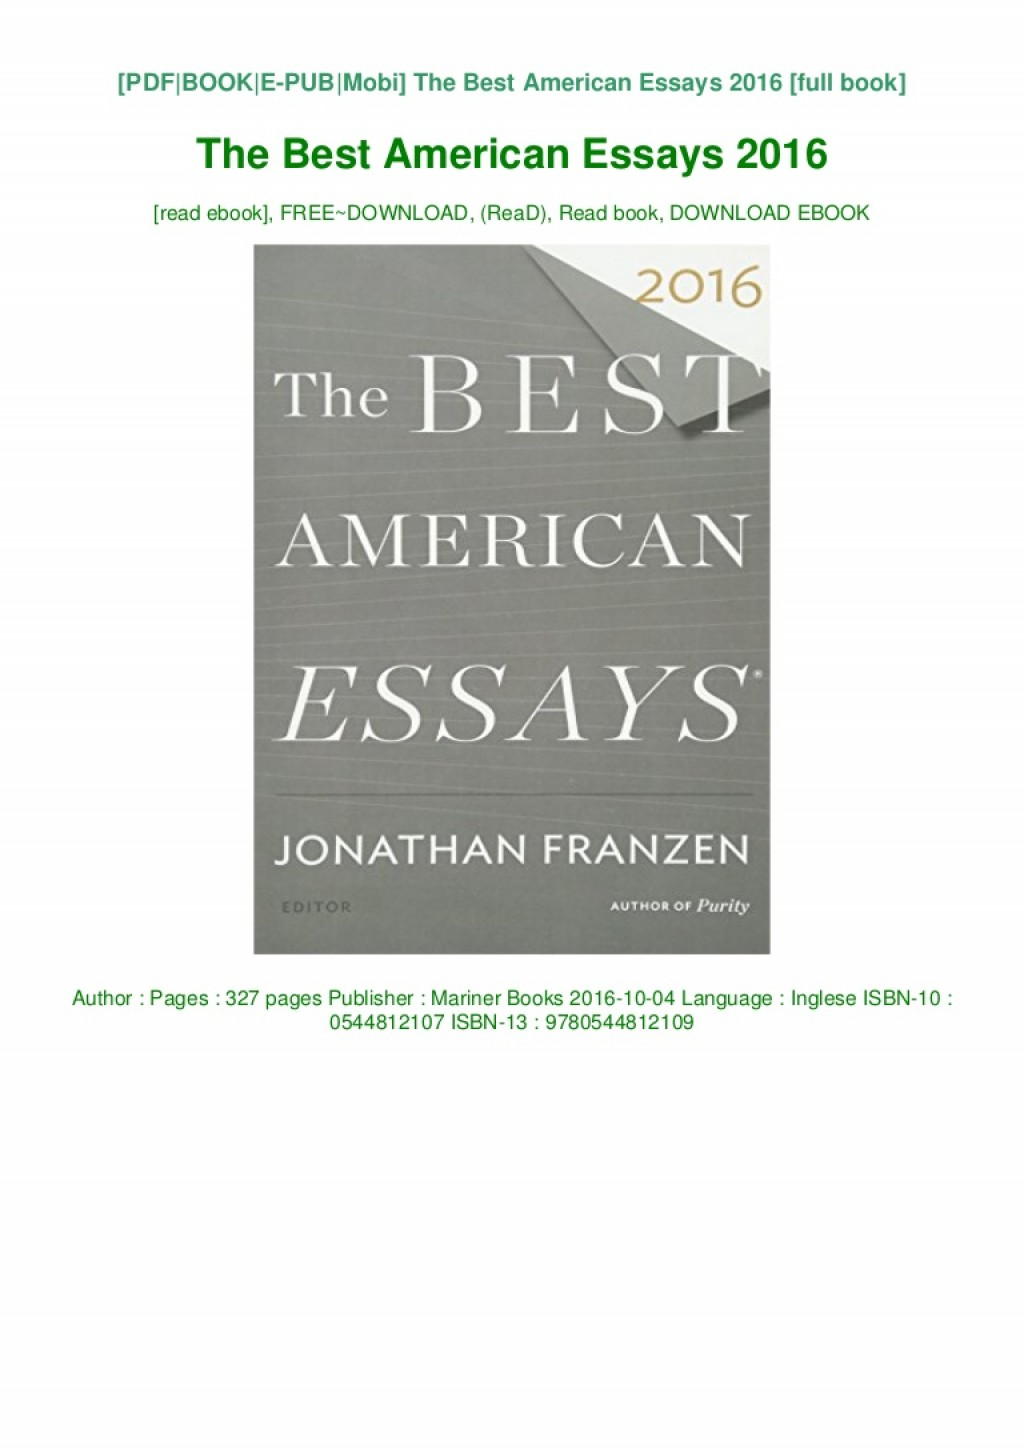 014 The Best American Essays Essay Example Download Pdf Epub Audiobook Ebook Thumbnail Wonderful Of Century Table Contents 2013 Large